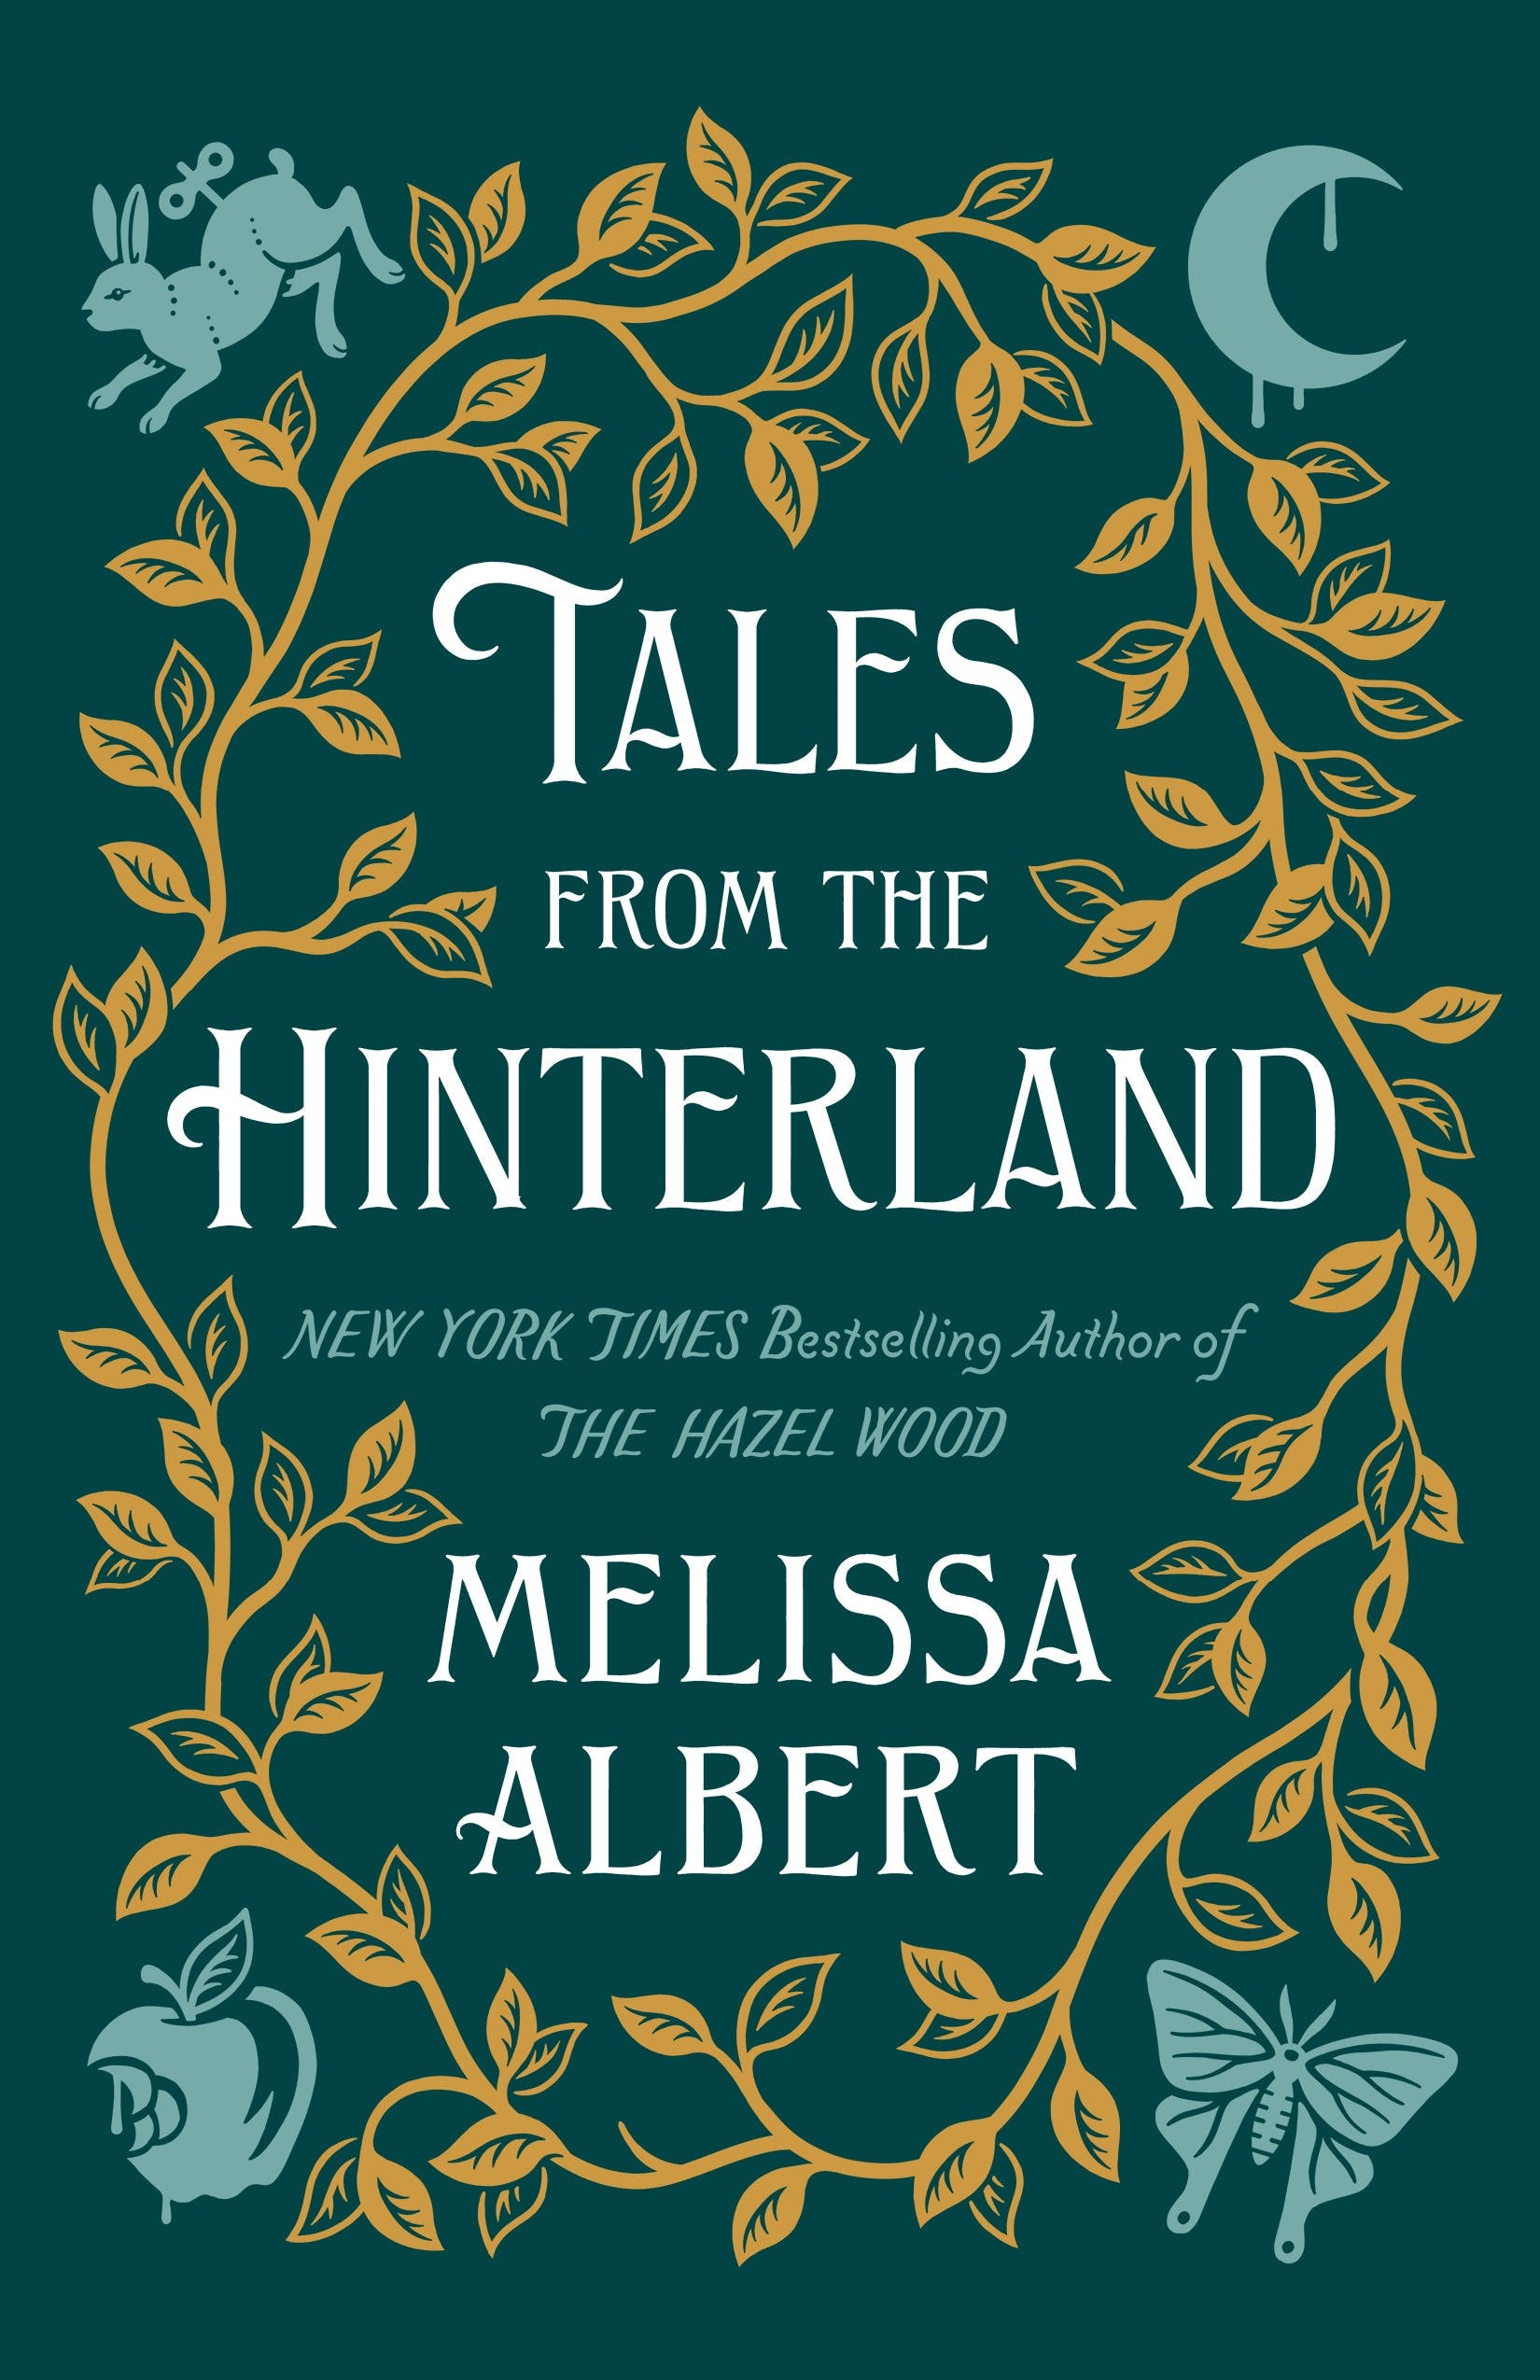 Image of Tales from the Hinterland